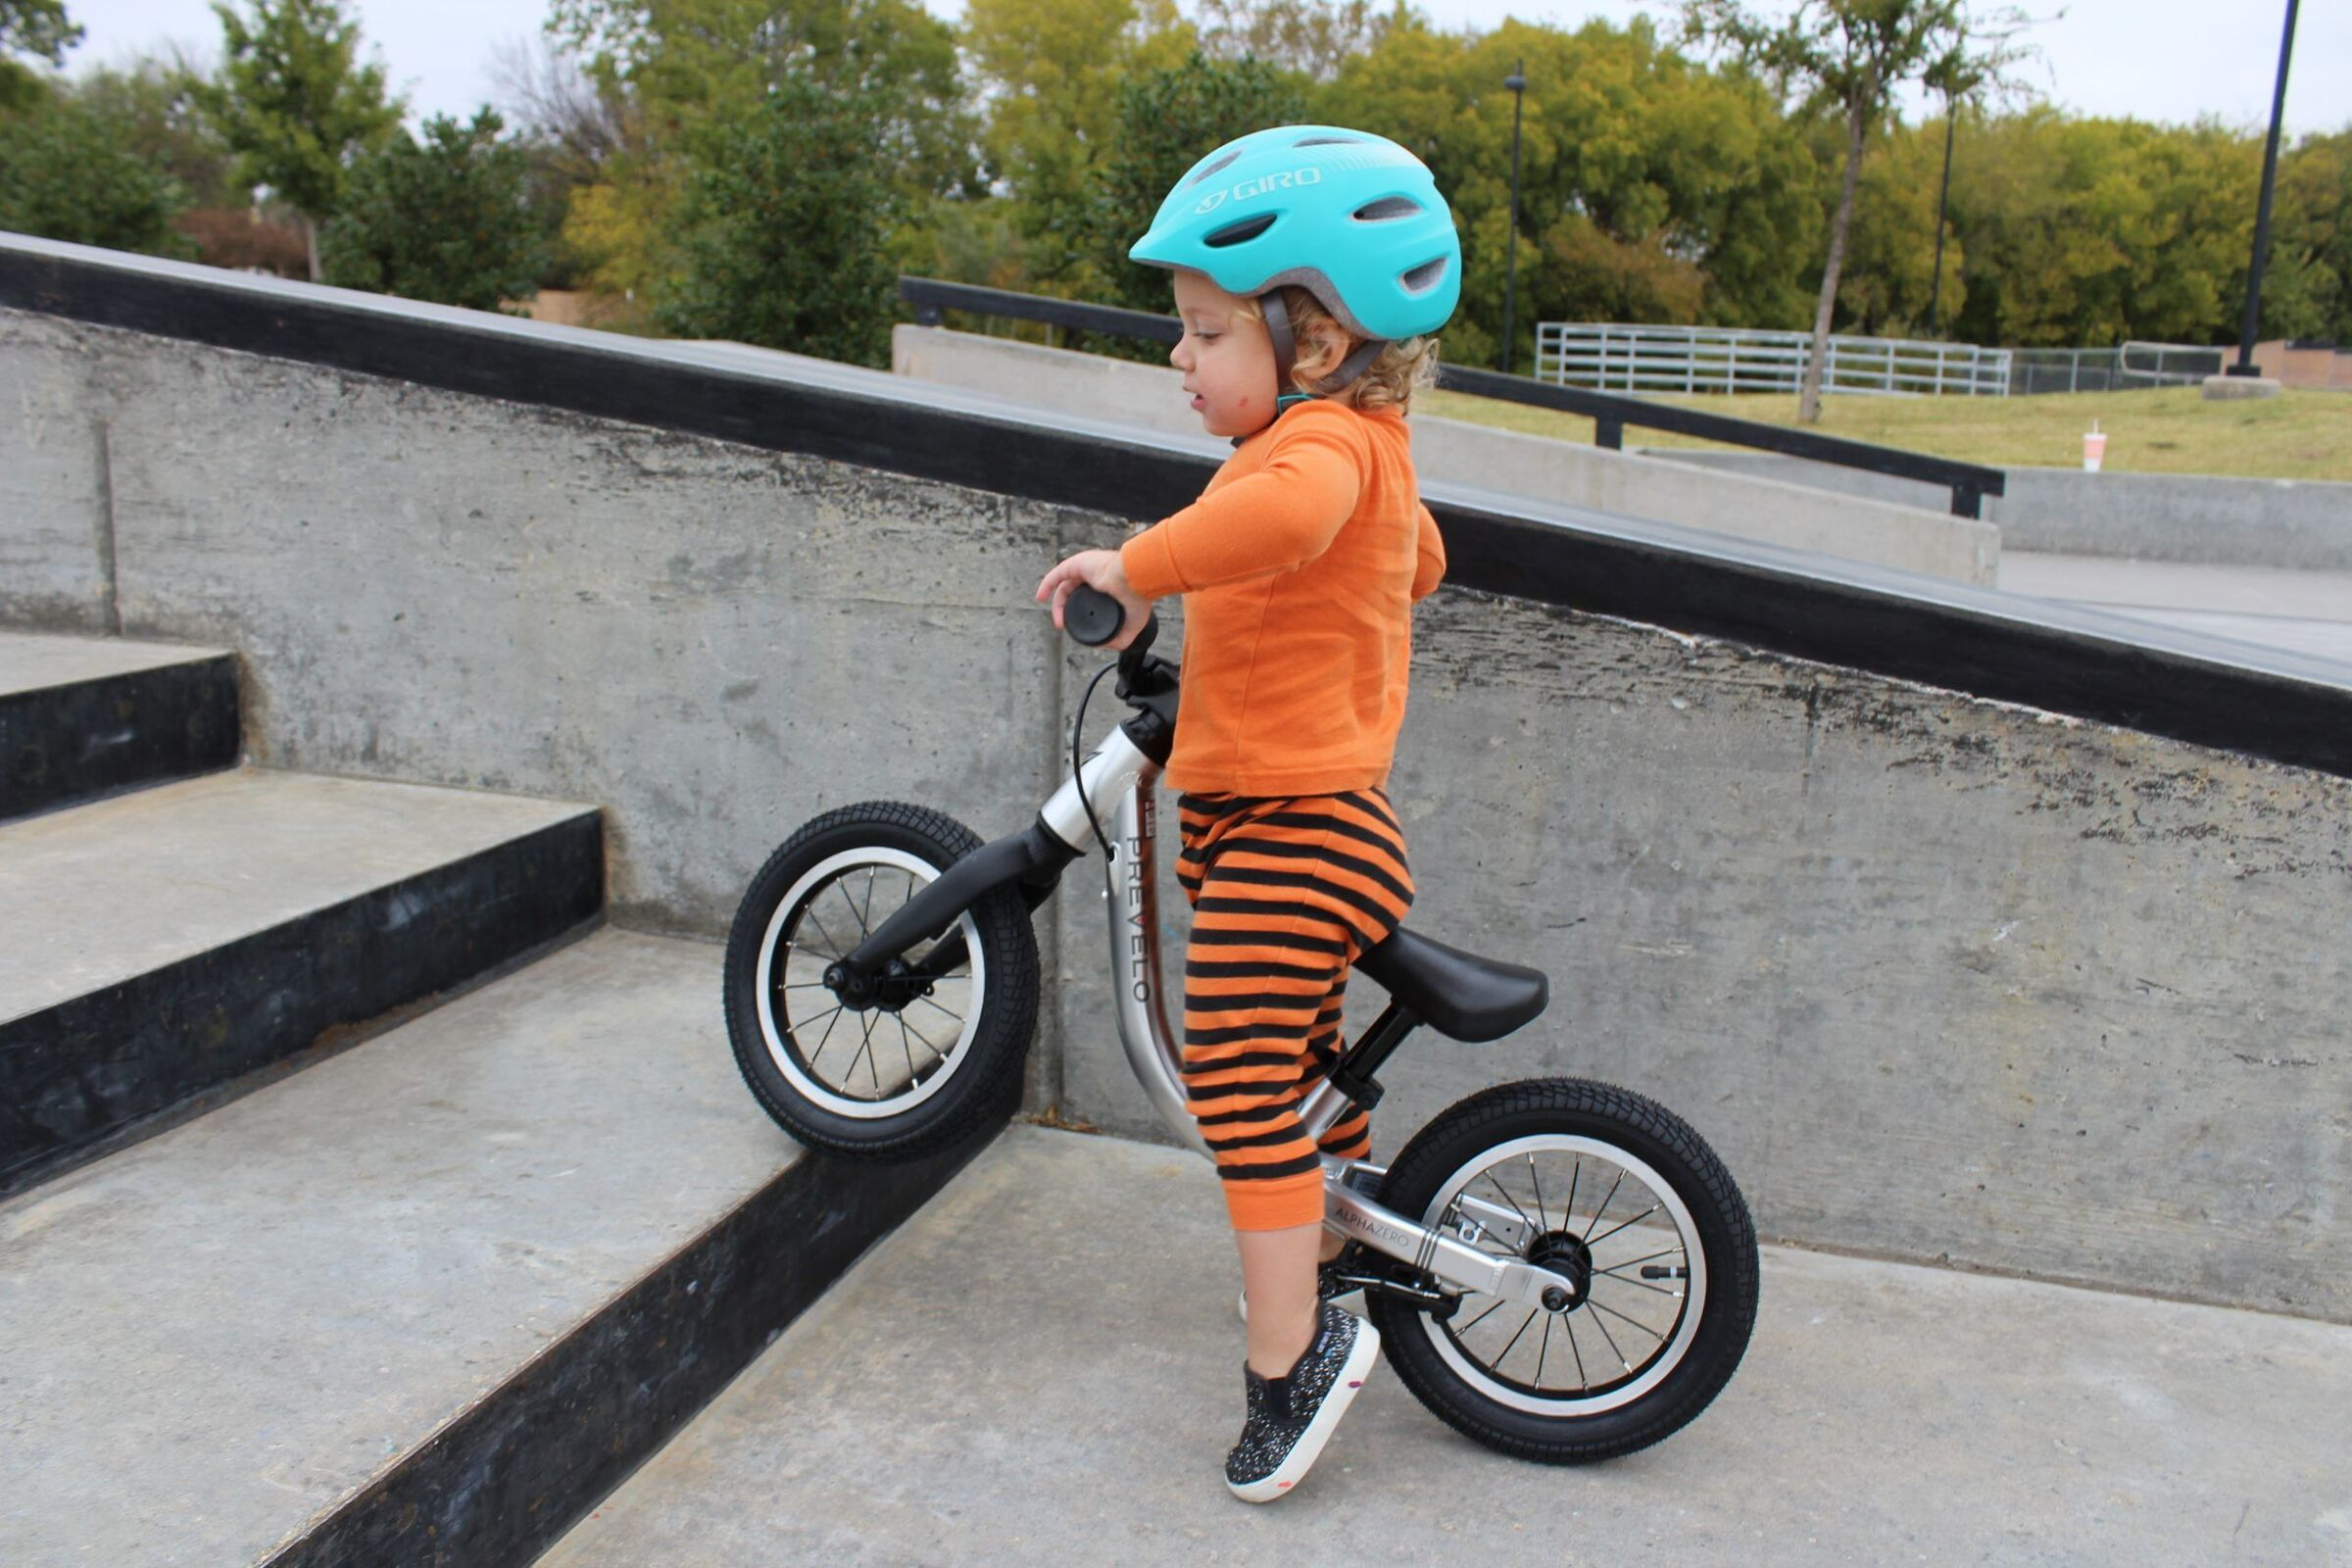 Toddler in halloween pjs lifting the Prevelo Alpha Zero Balance bike up the stairs at the skatepark.